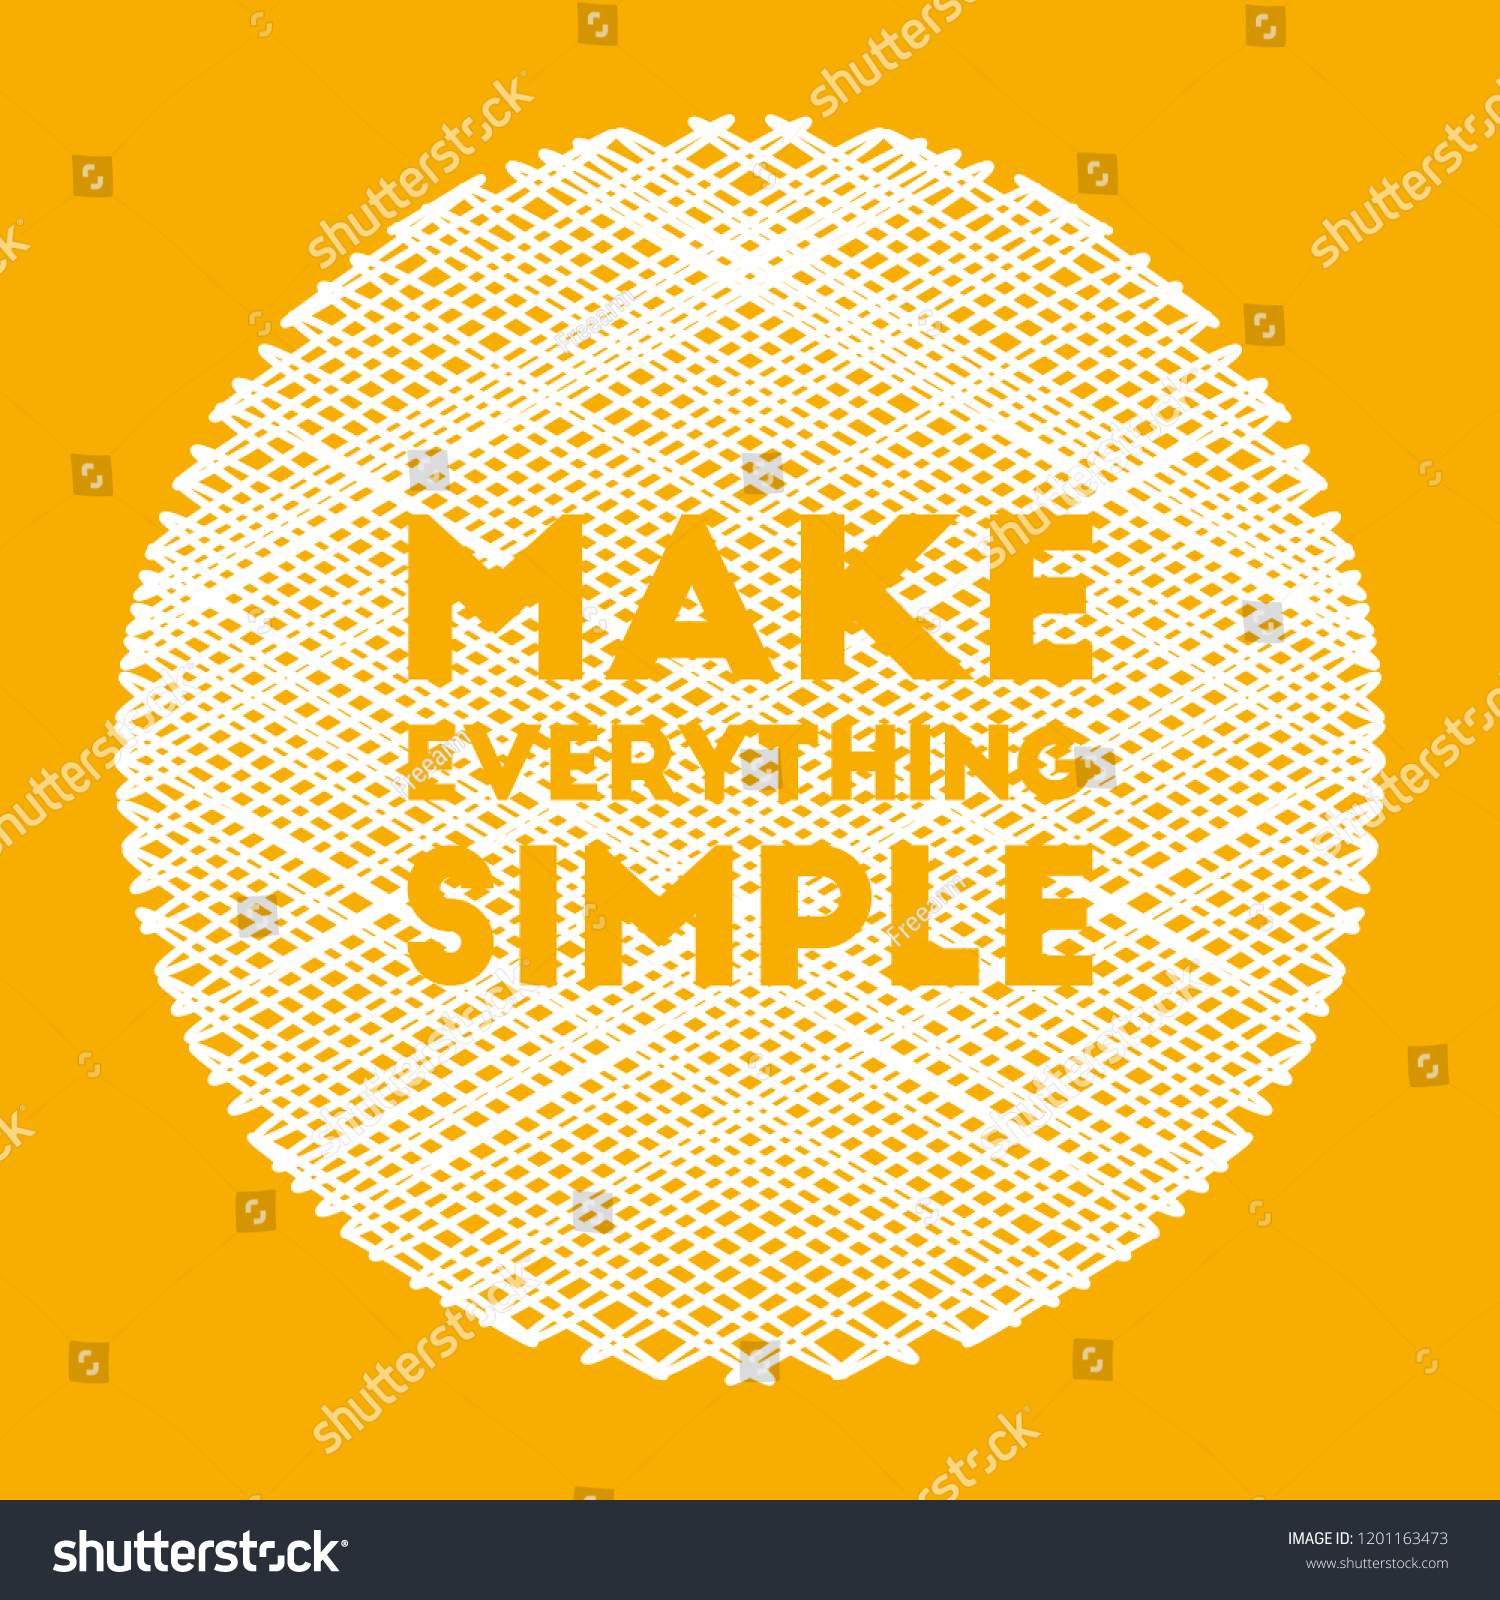 Make Everything Simple Inspirational Motivational Vector Stock Vector Royalty Free 1201163473